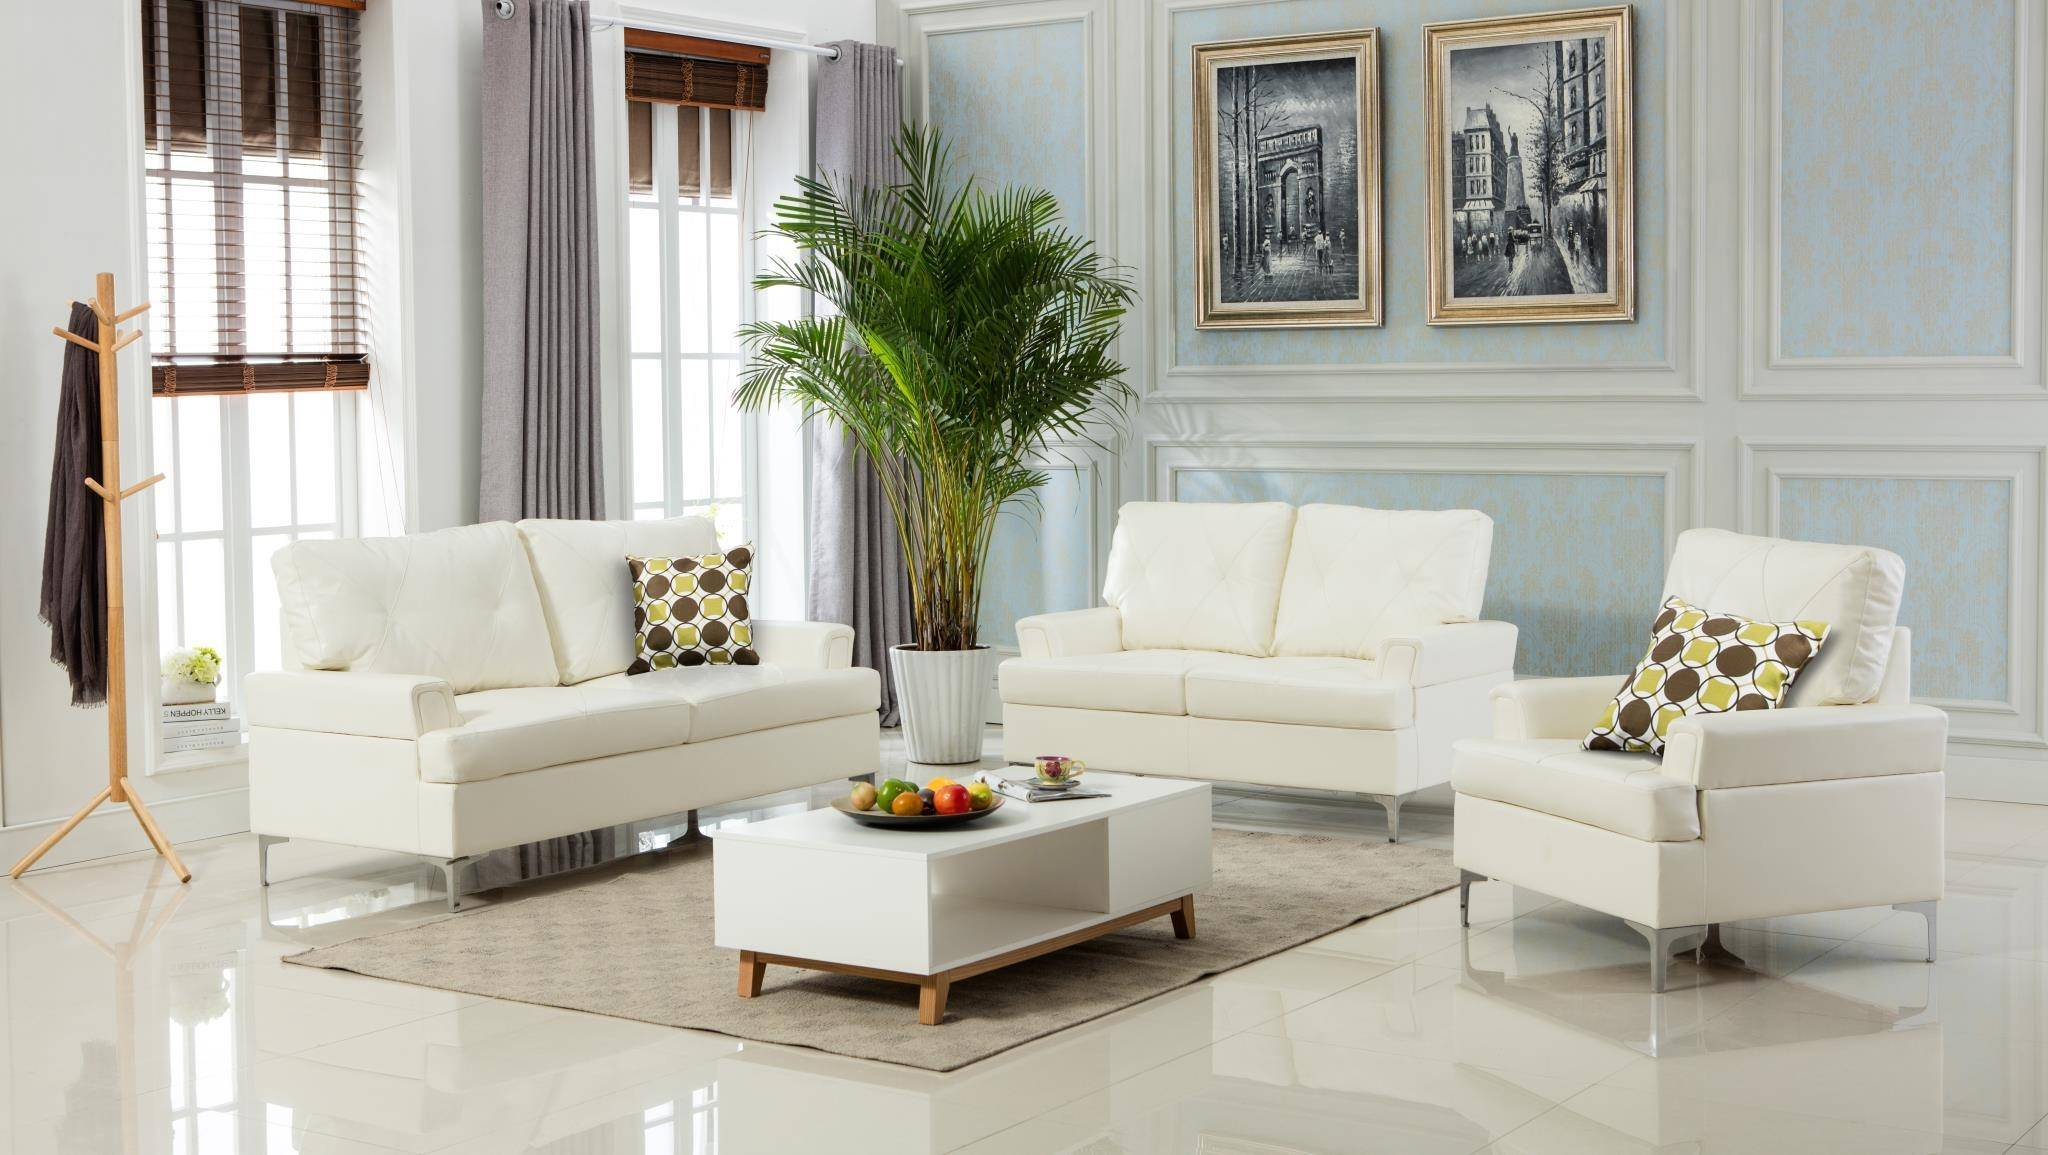 Myco Furniture Walker Modern White Bonded Leather Living For Sofa Chairs For Living Room (View 5 of 15)